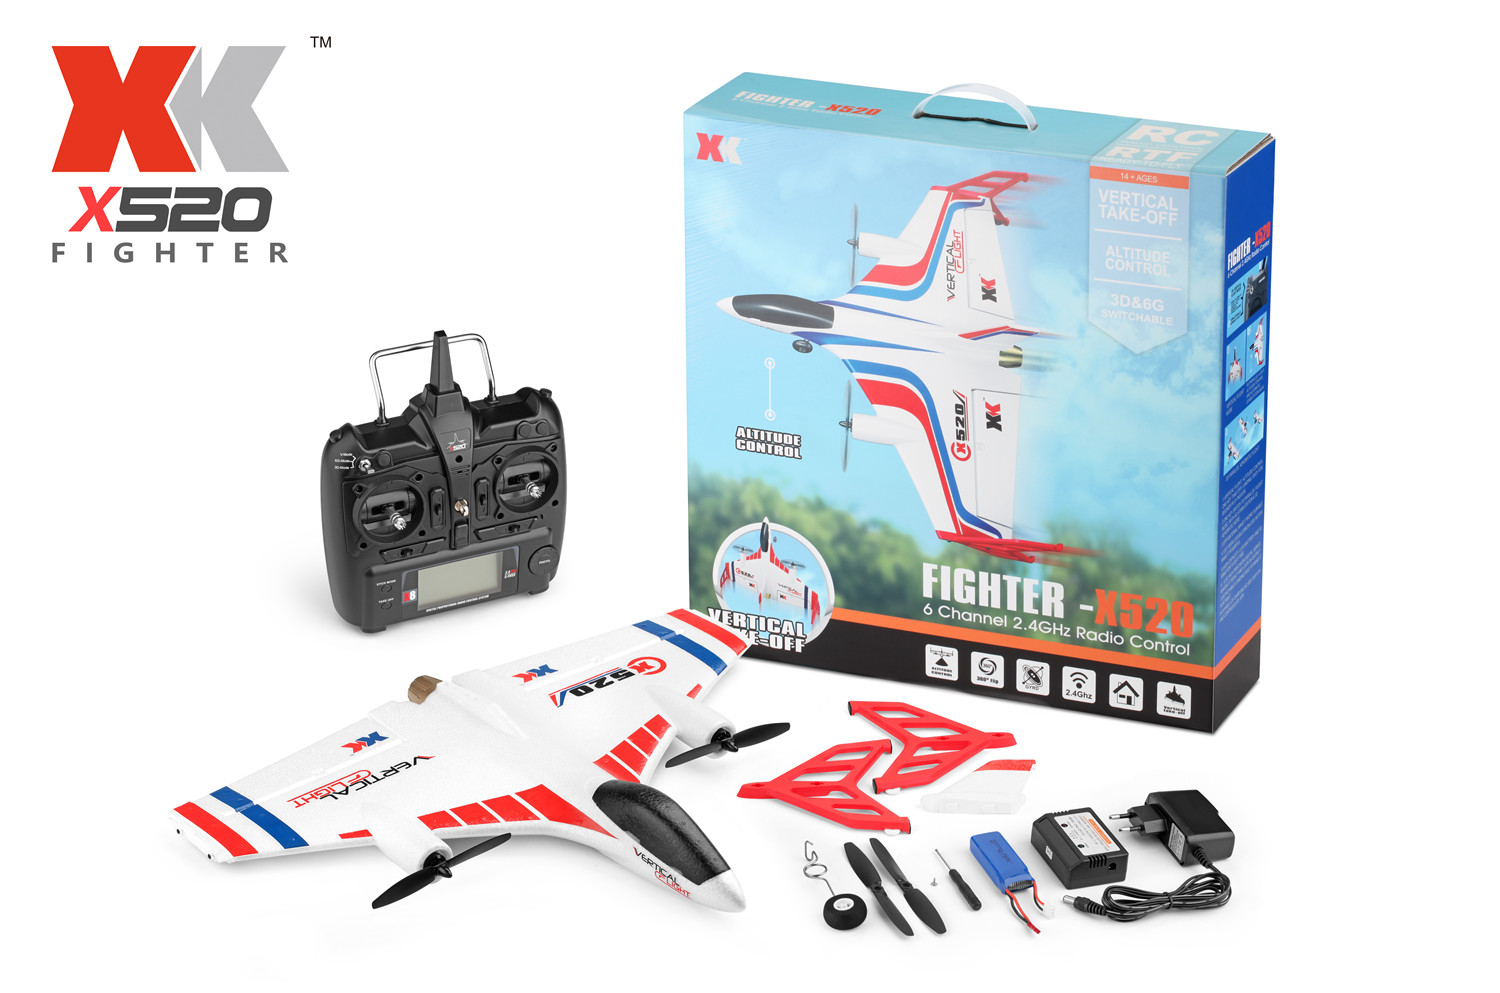 Wltoys XK X520 Vtol RC Plane and Parts